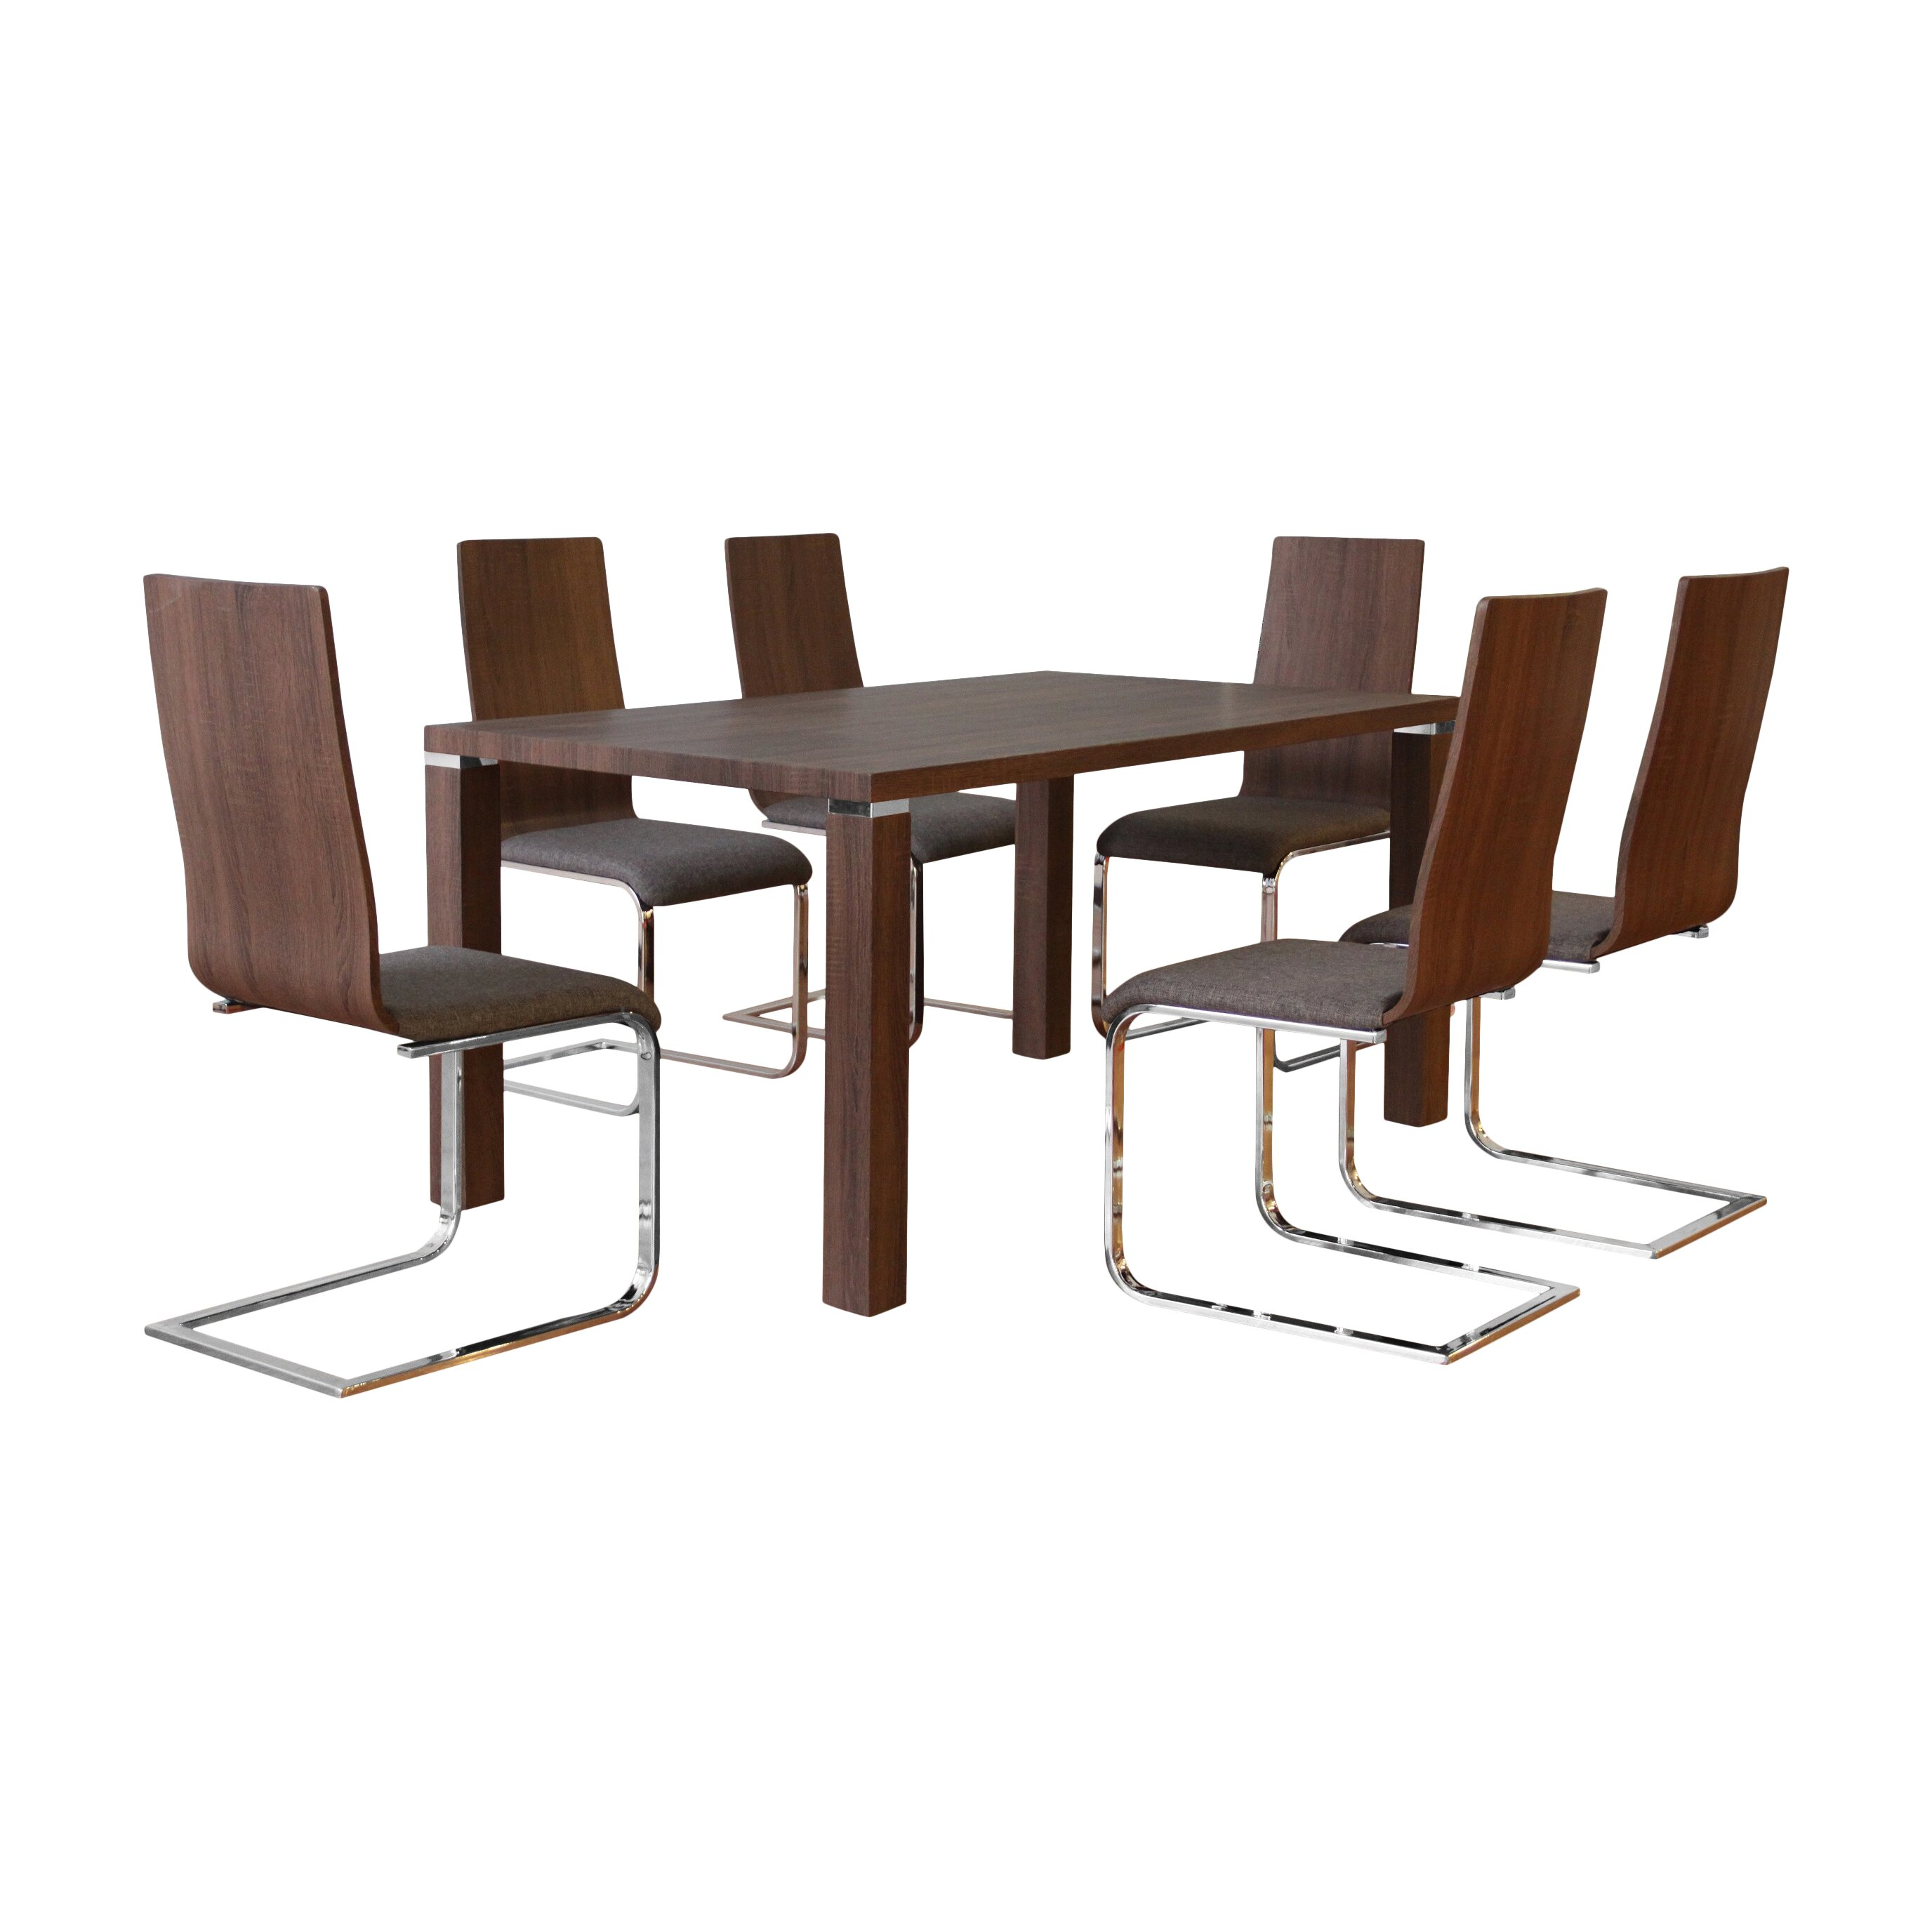 Container tilly 7 piece dining set reviews wayfair for 7 piece dining set